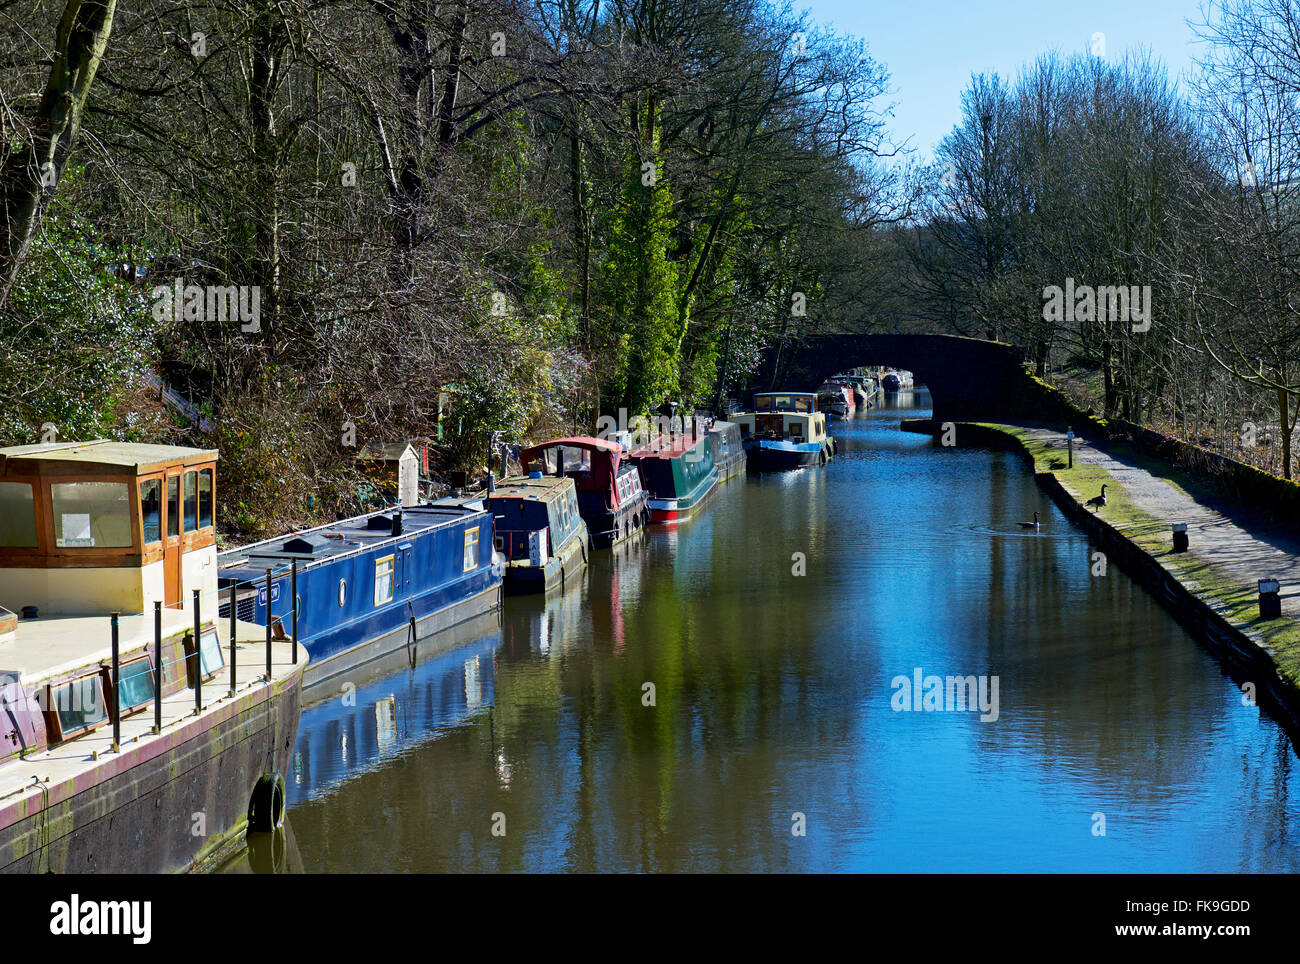 The Rochdale Canal at Hebden Bridge, Calderdale, West Yorkshire, England UK - Stock Image